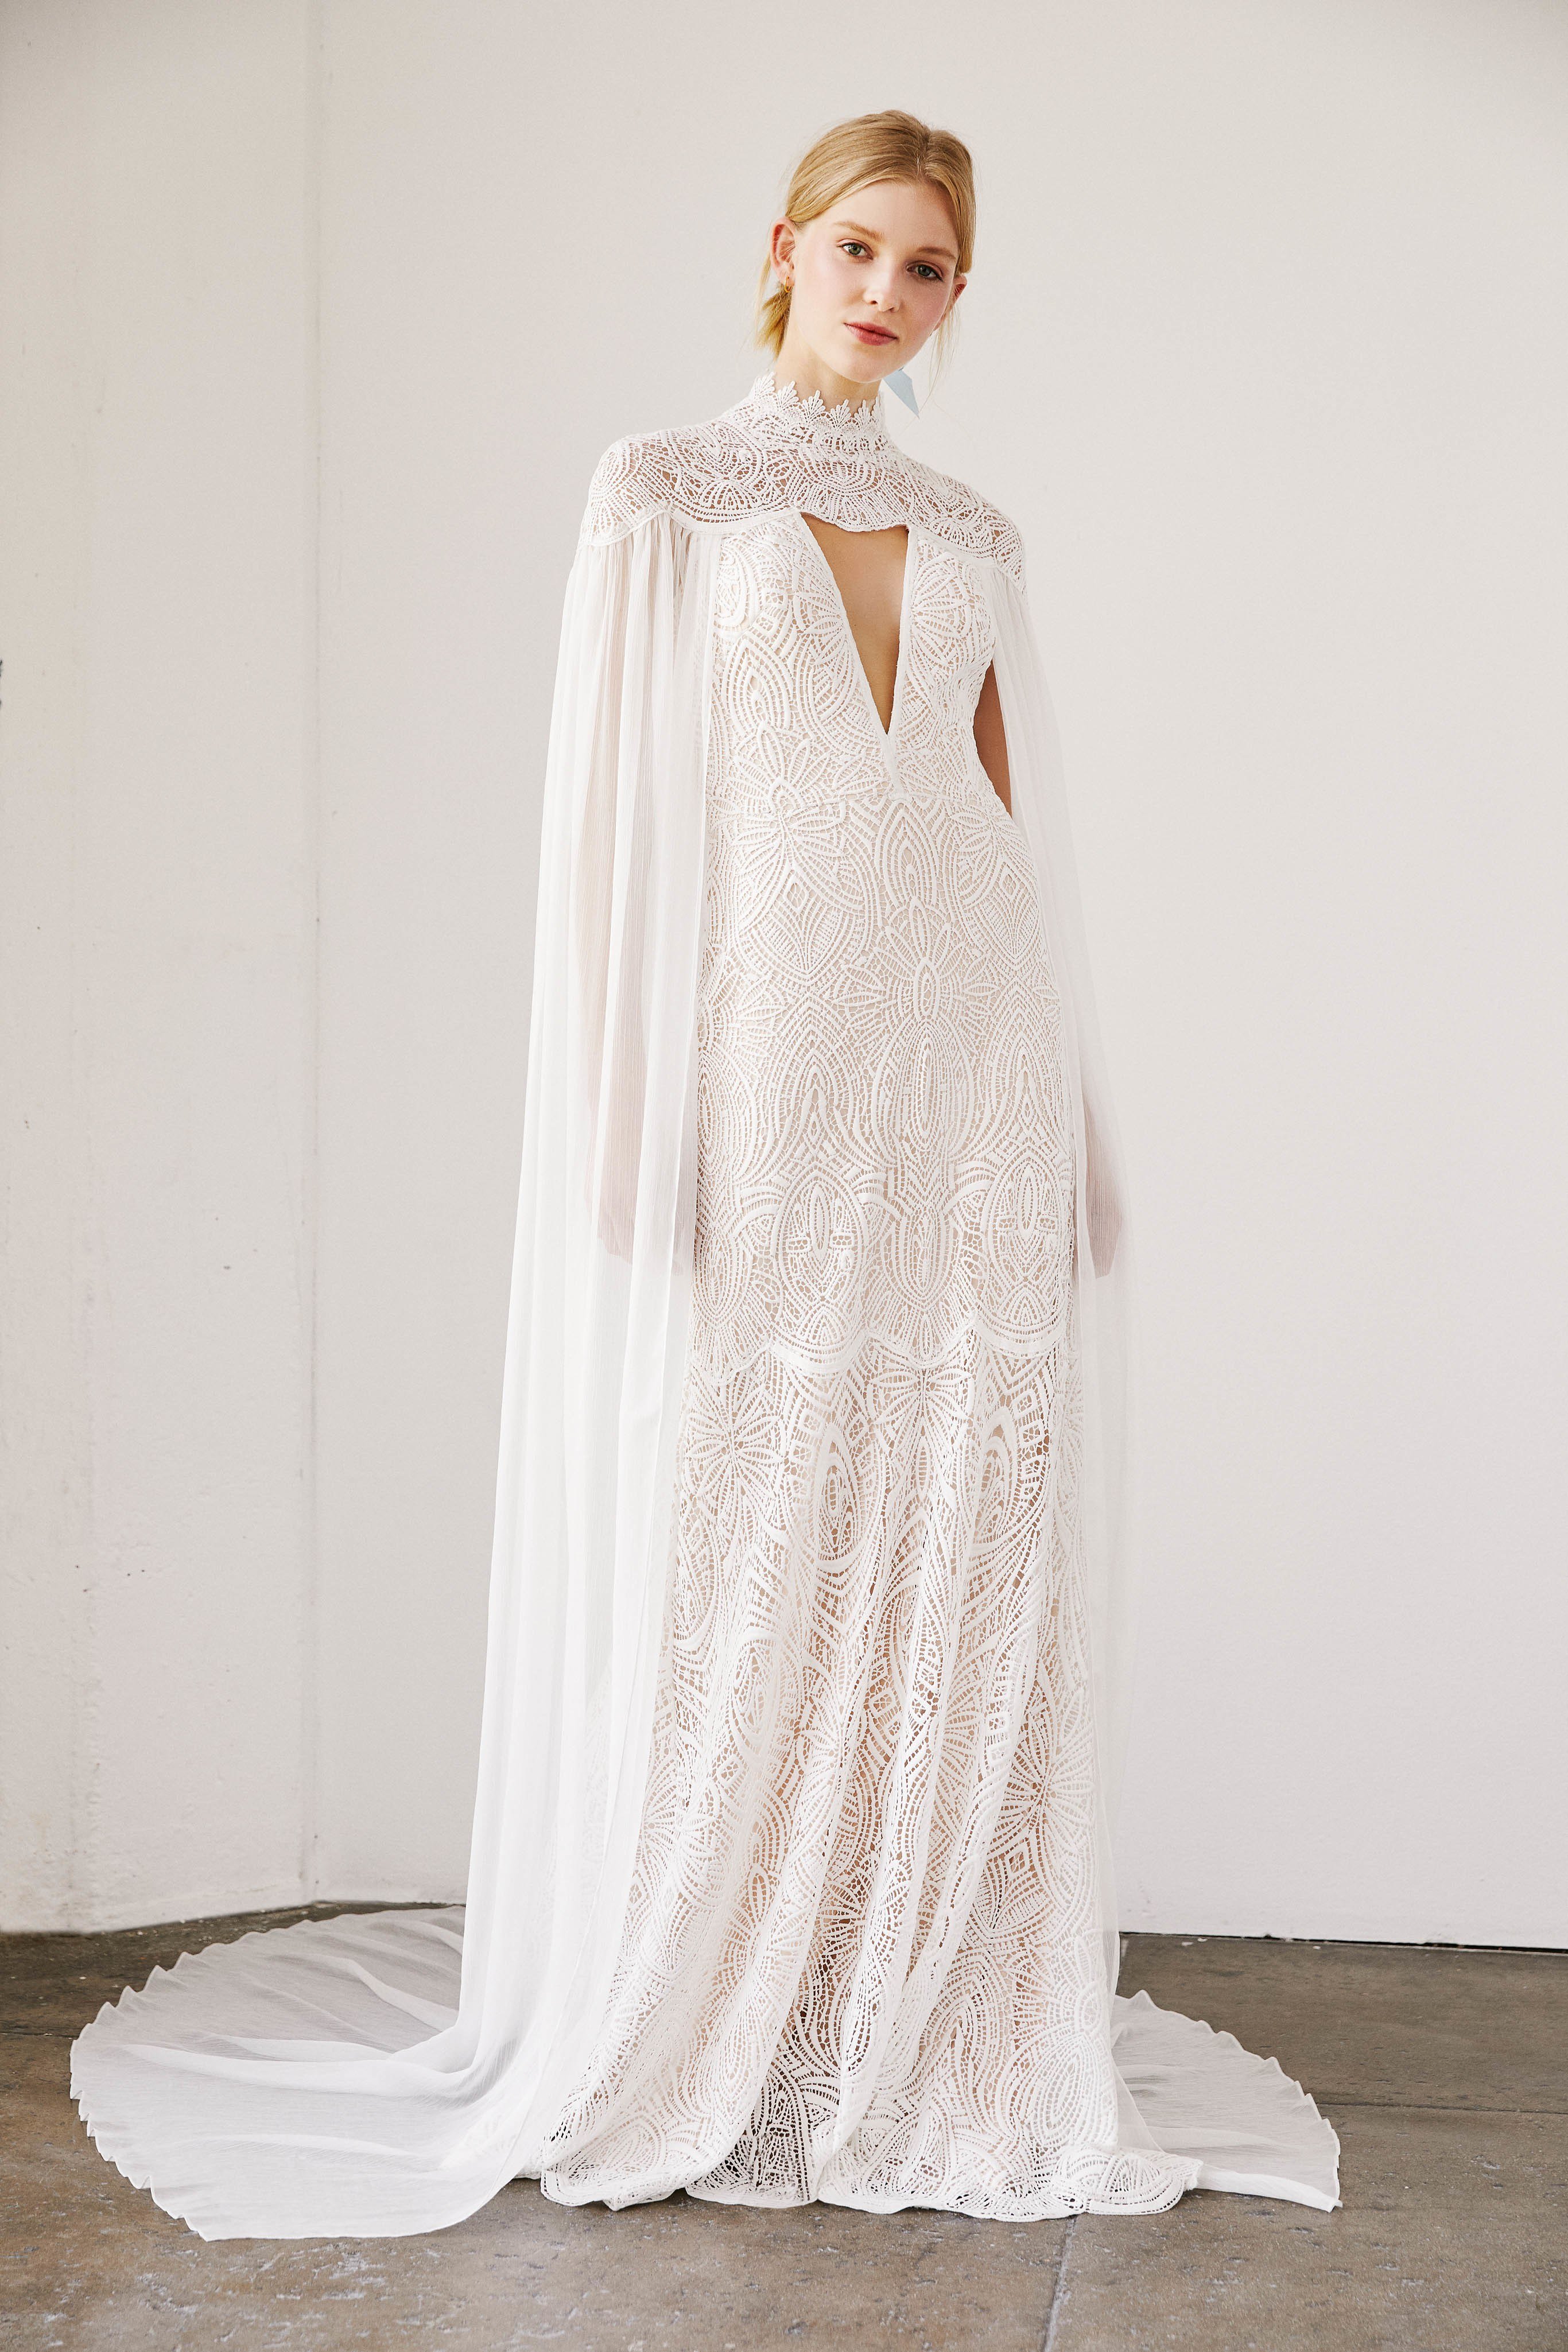 pure-elegance-tadashi-shojis-spring-2019-wedding-collection-is-a-must-see